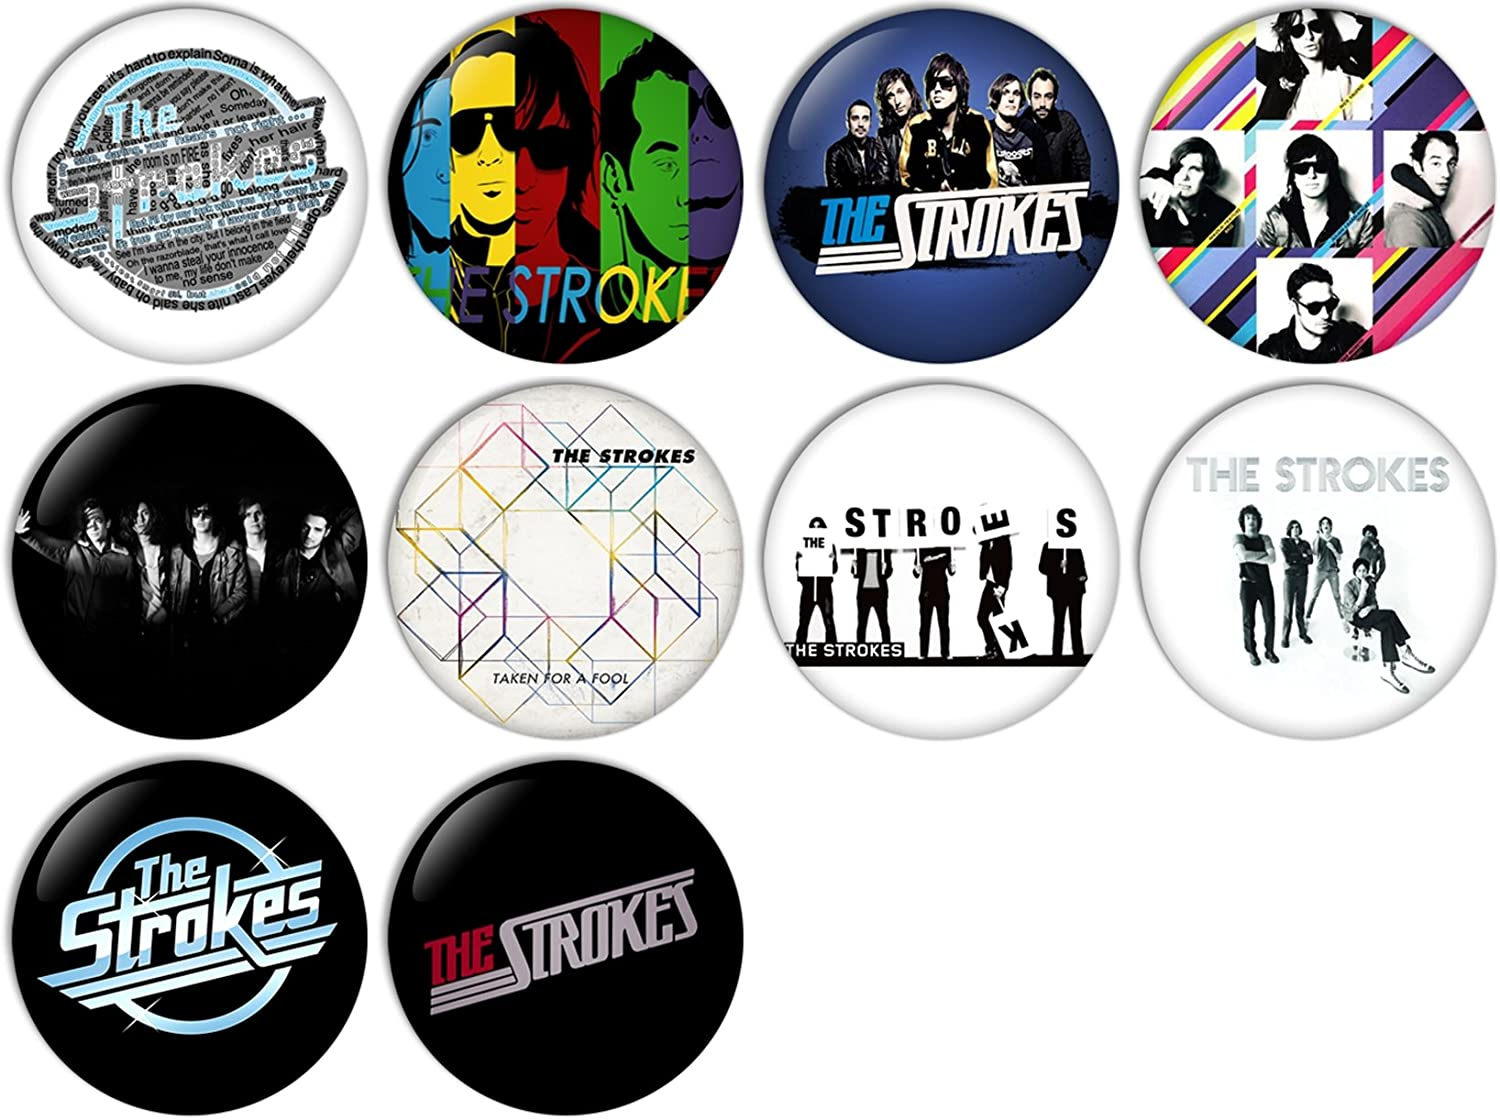 The Strokes Pinback Buttons Badges/Pin 1 Inch (25mm) Set of 10 New